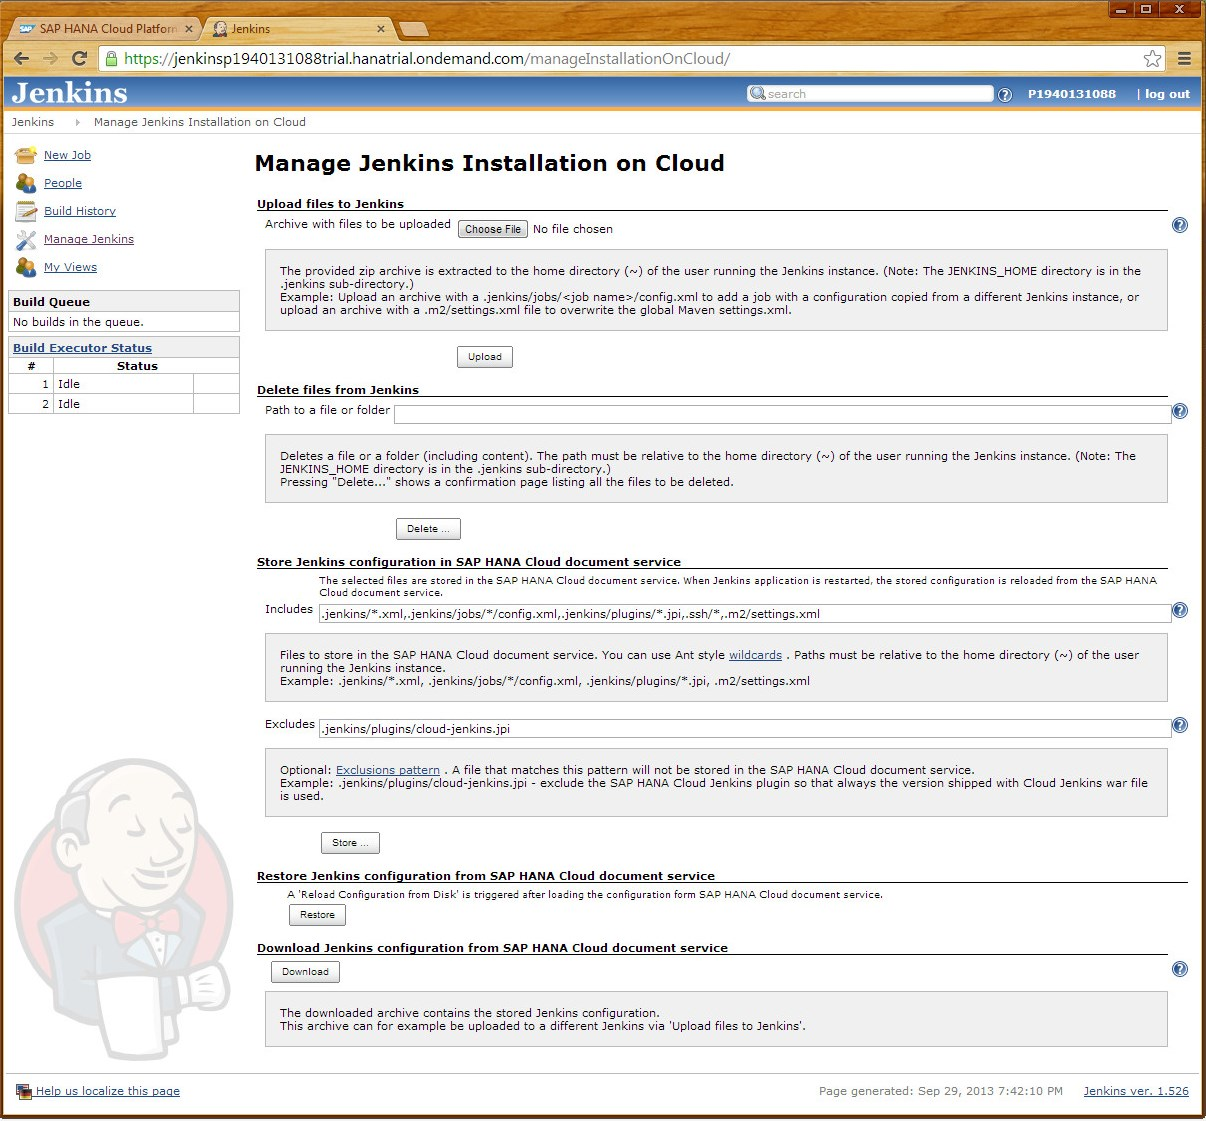 /wp-content/uploads/2013/10/jenkins_003_manage_jenkins_installation_on_cloud_296151.jpg